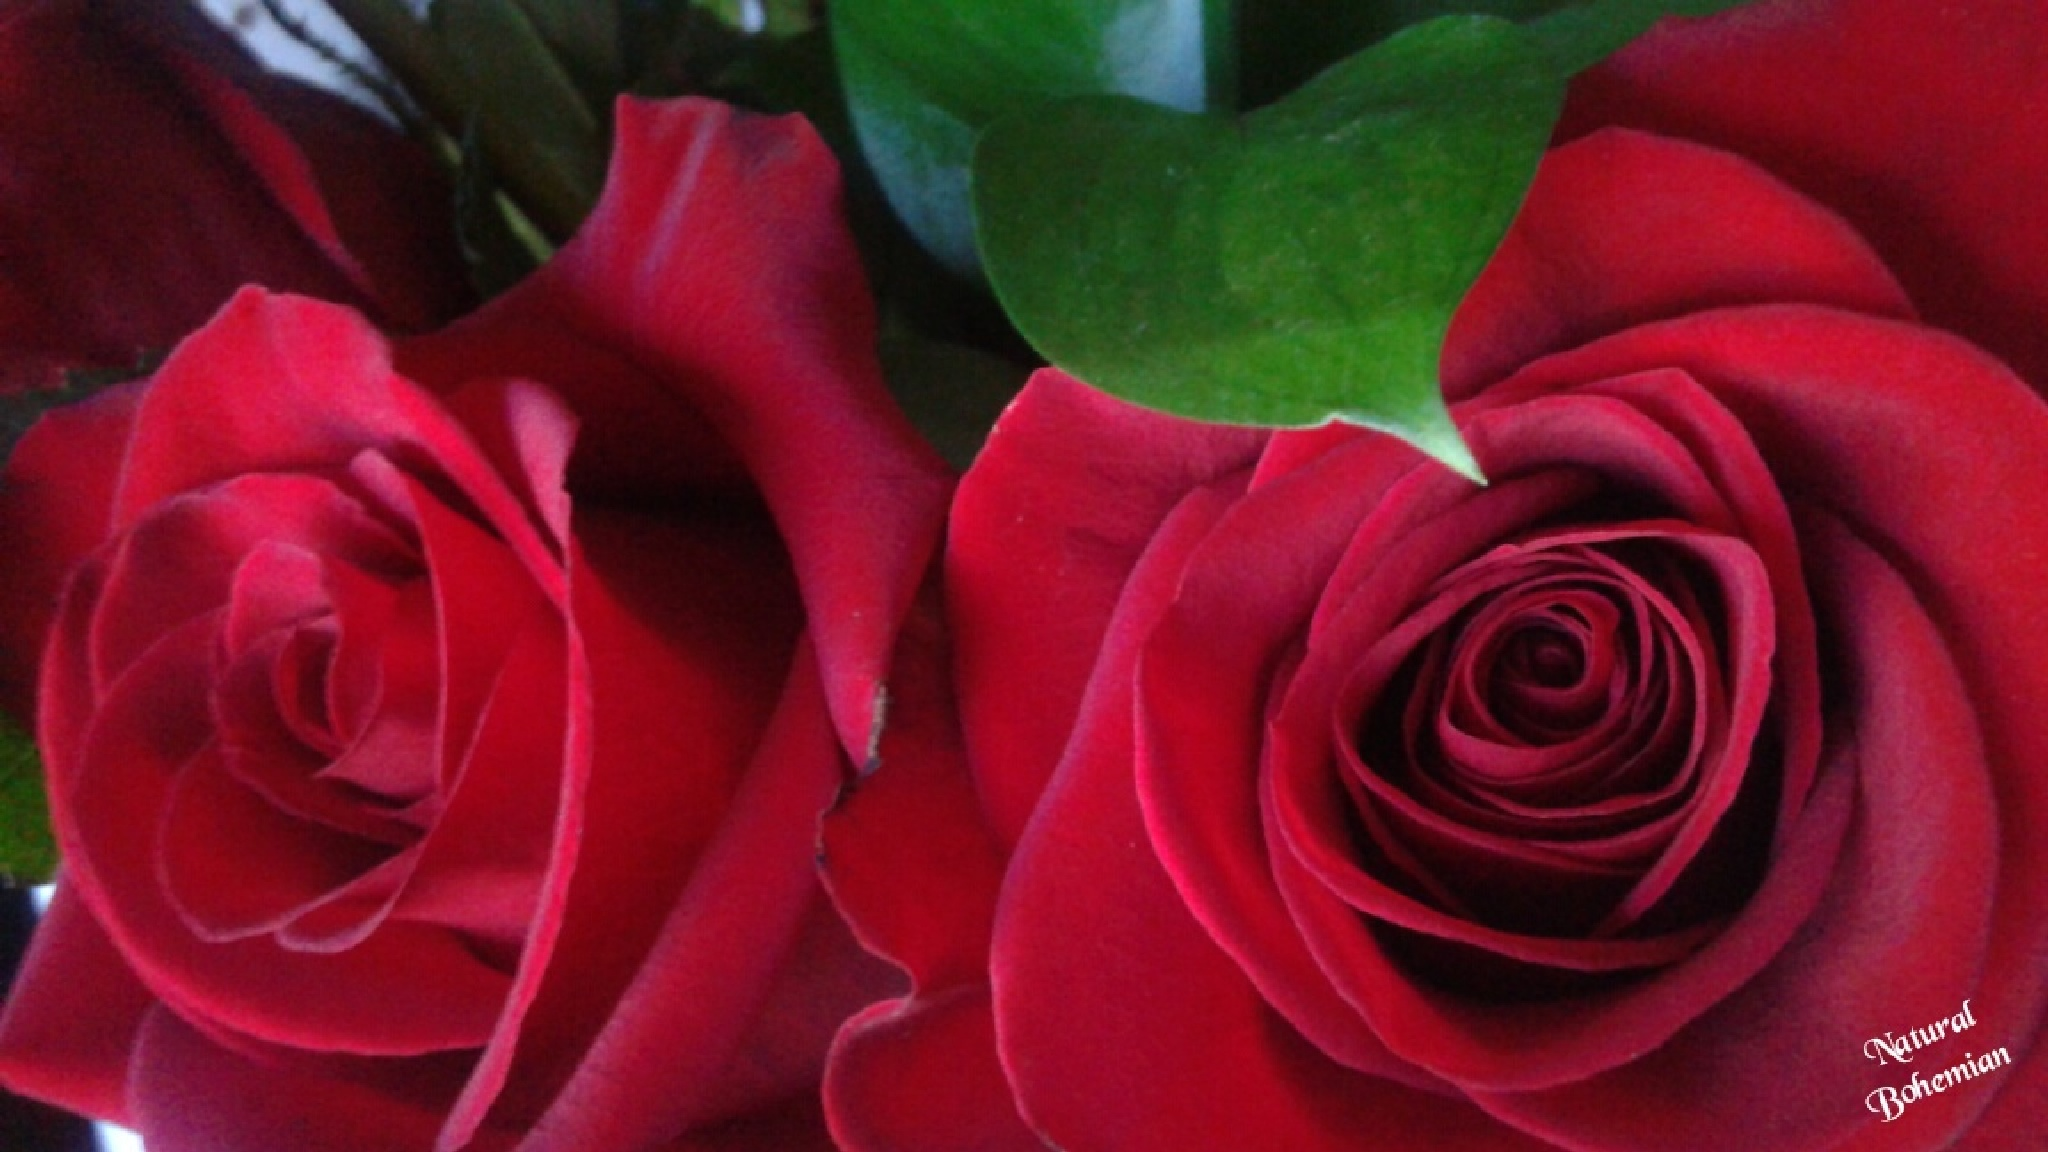 Red roses by Natural Bohemian photography